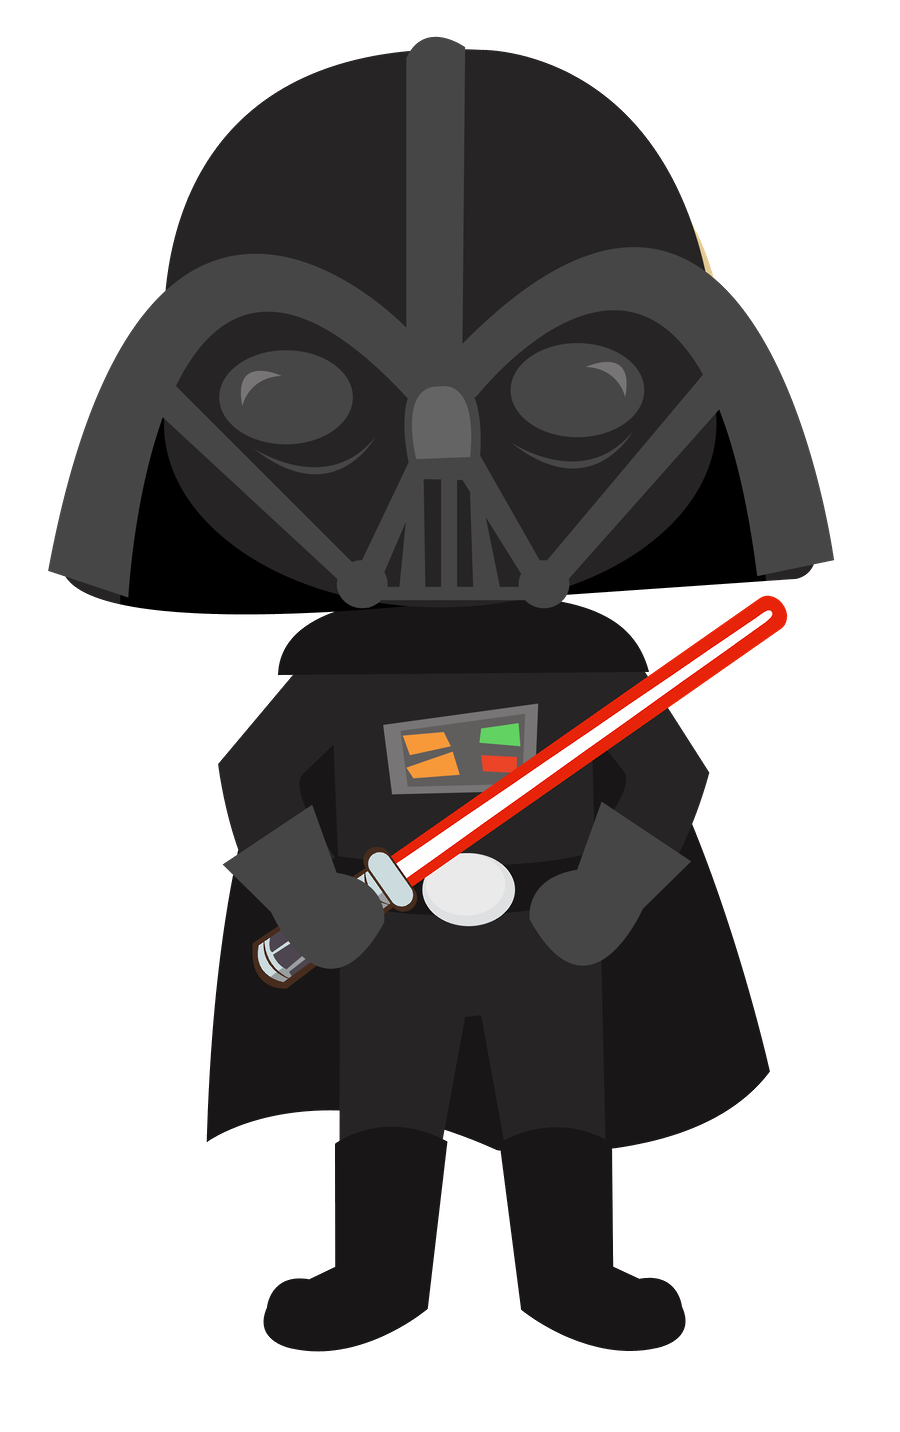 Darth vader clipart logo. Star wars minus felt